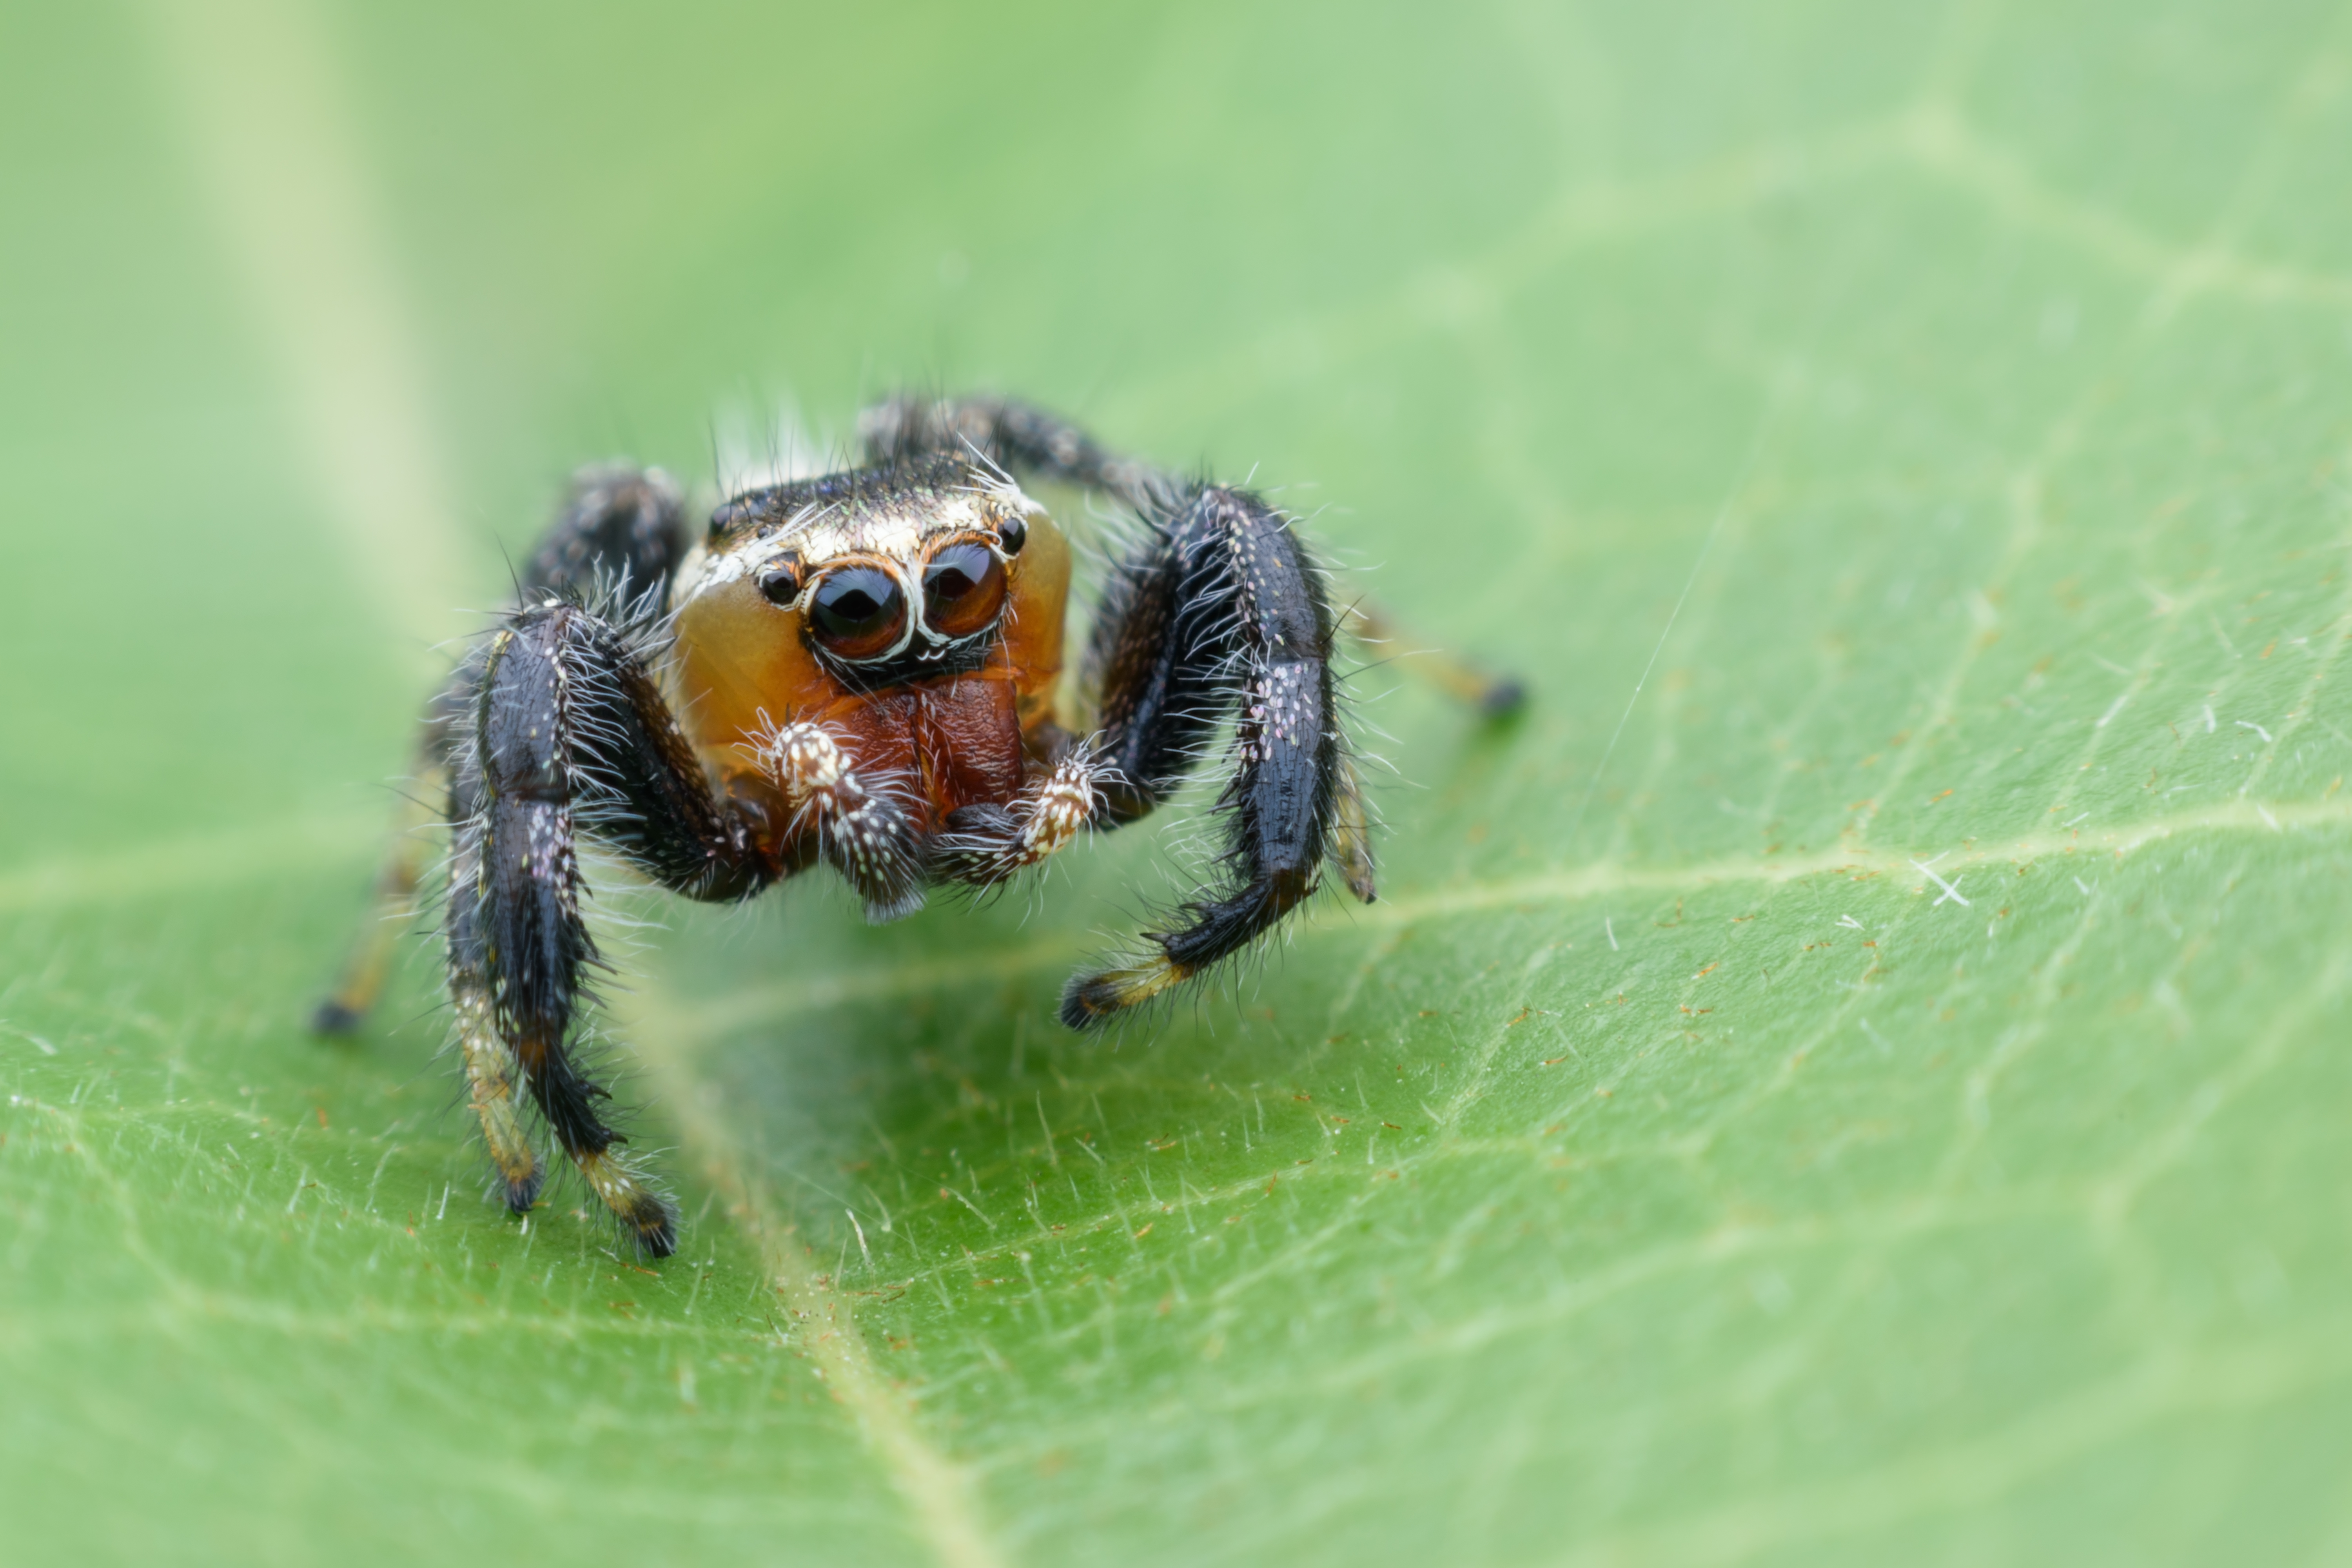 Types of Spiders: Black With White Dots | Sciencing